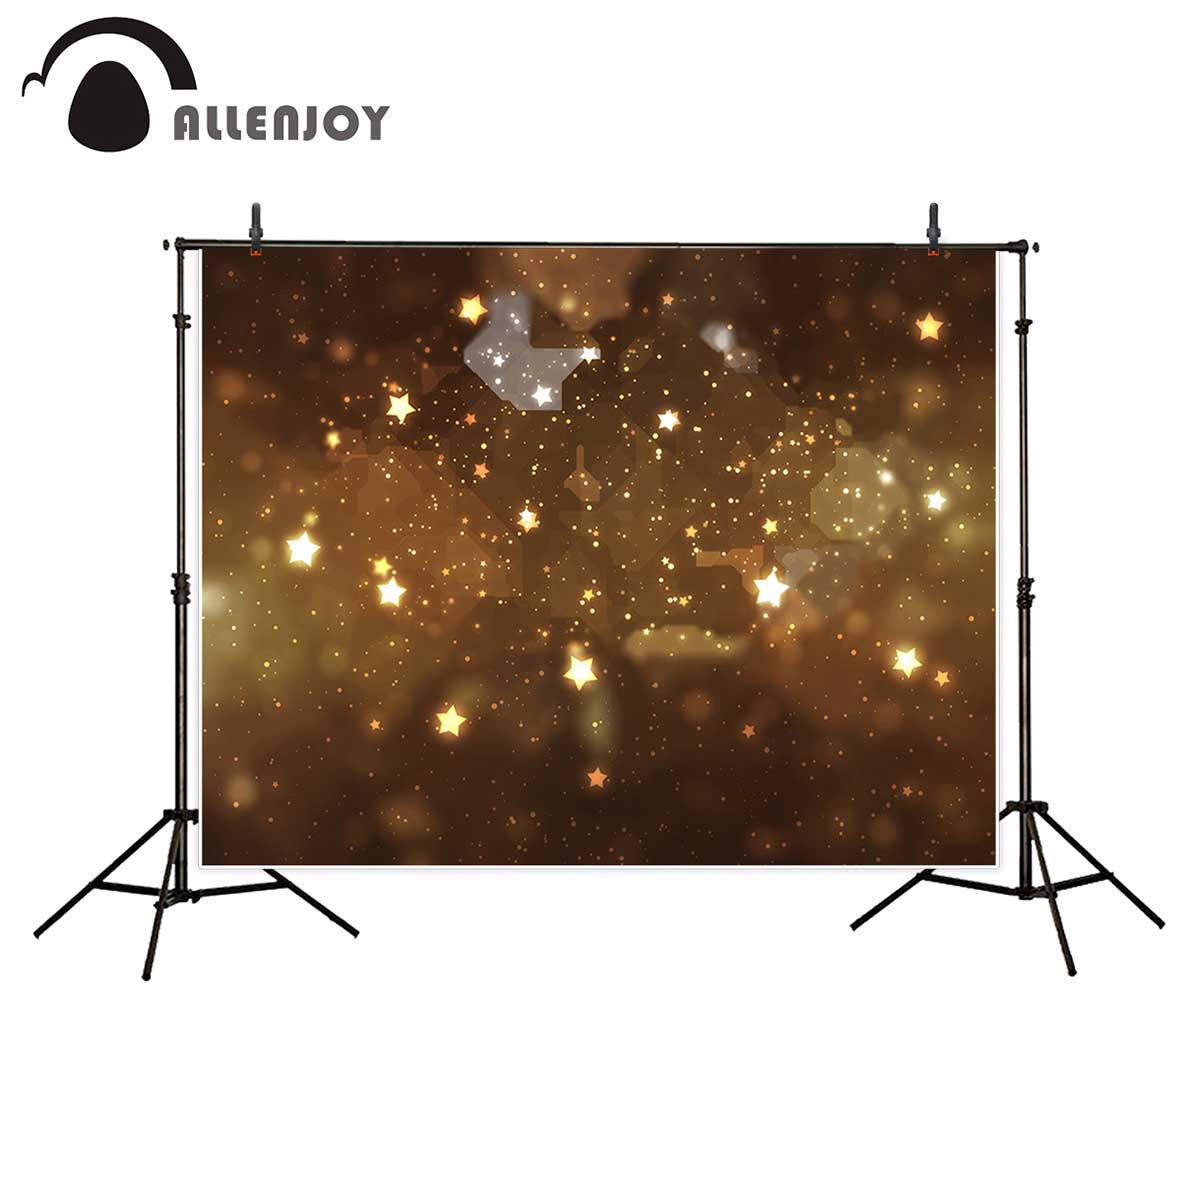 Allenjoy photography background brown glitter stars bokeh backdrop Christmas theme Photo background studio camera fotografica лампочка онлайт 71 644 oll g45 6 230 4k e14